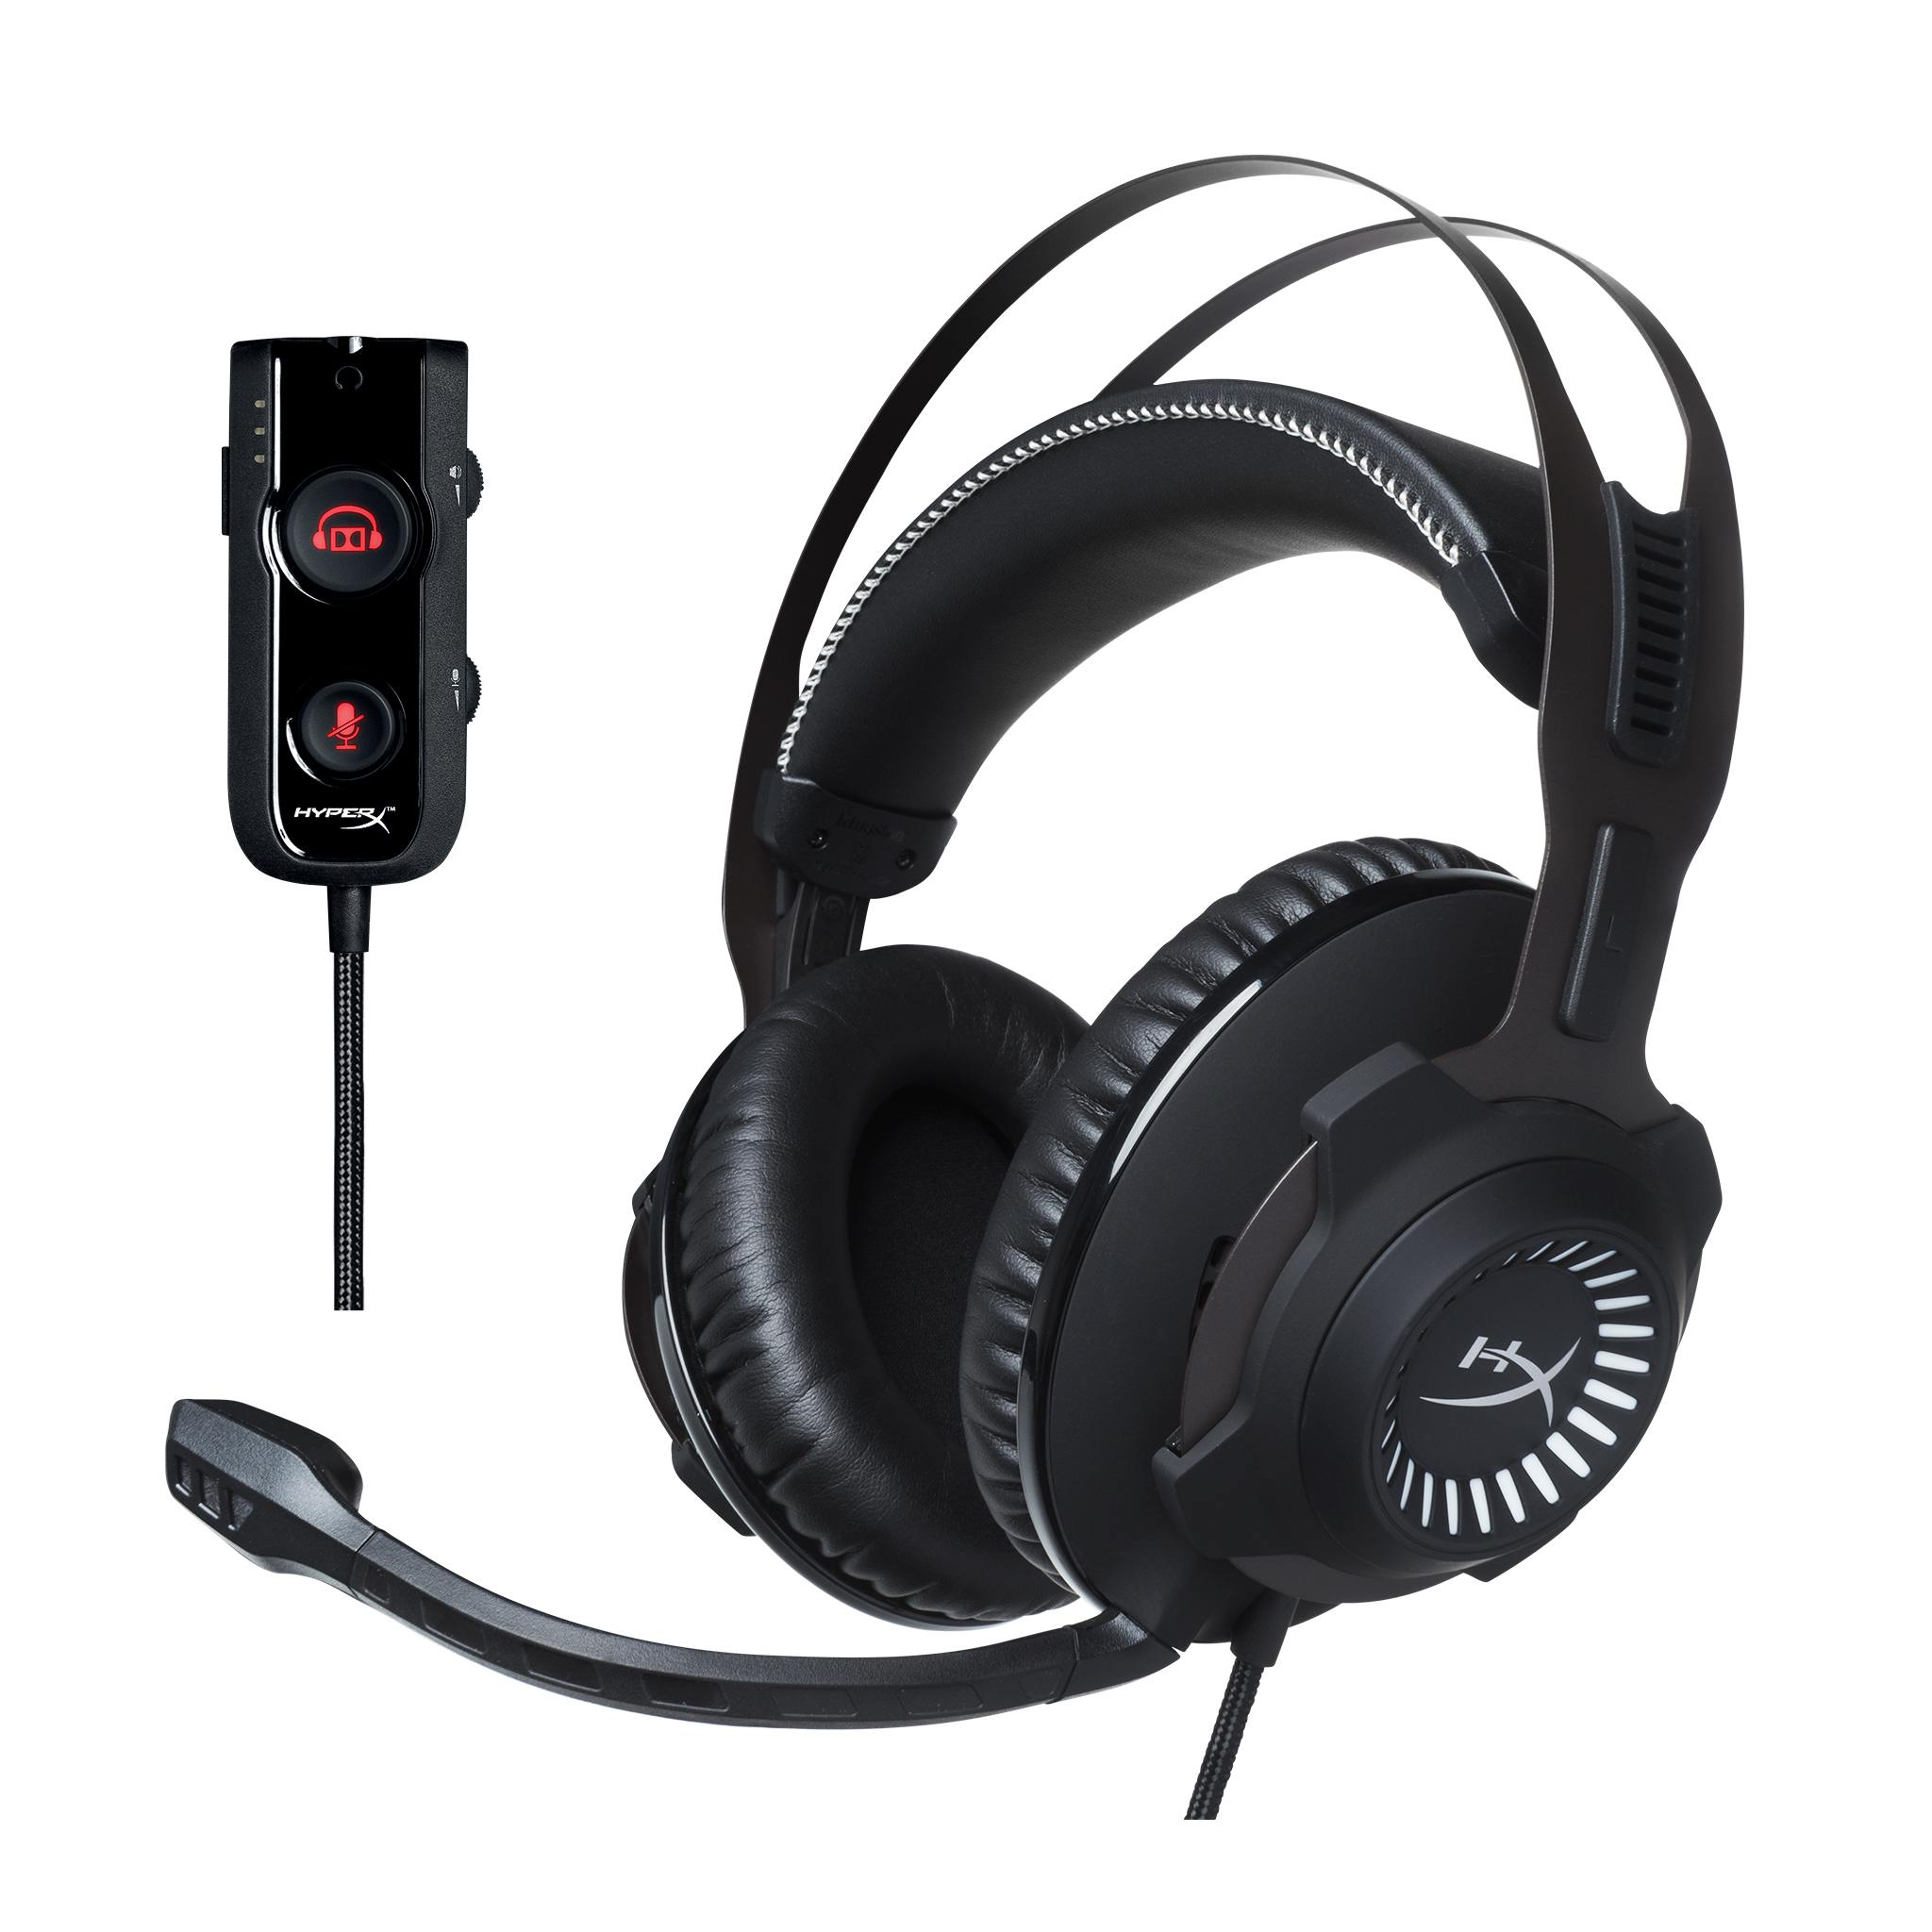 finest selection a970b b1aac Cloud Revolver Gaming Headsets – Ideal for FPS Gamers   HyperX